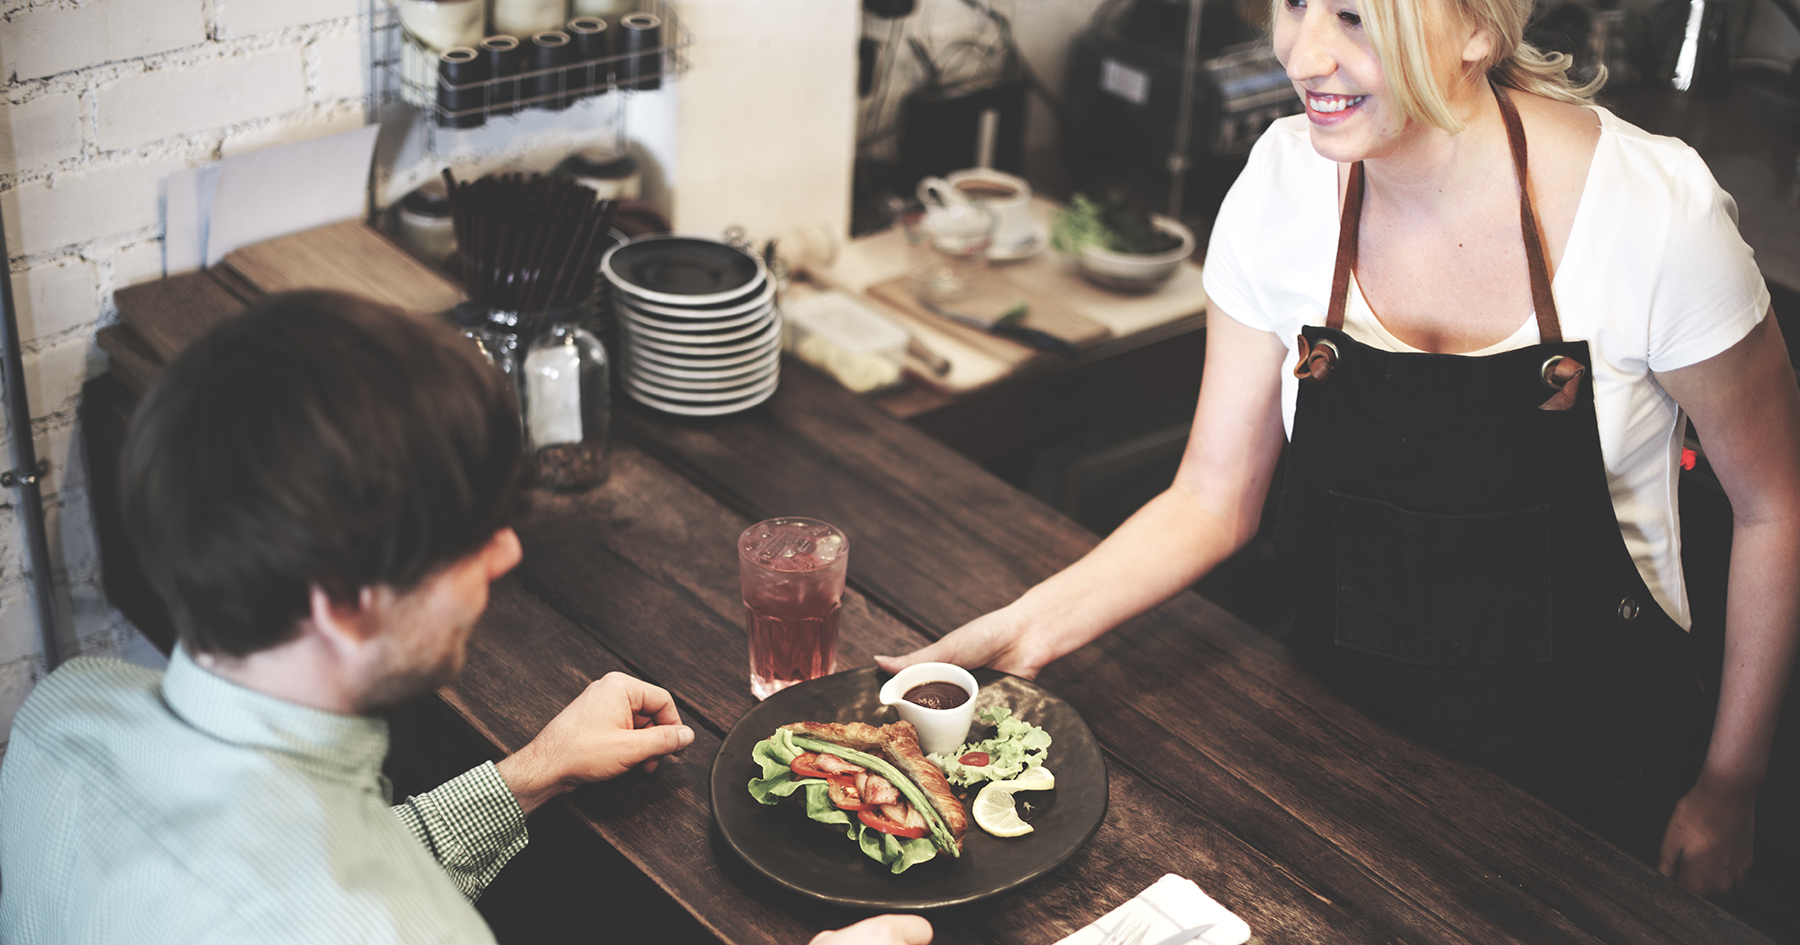 Chain restaurant staff vacancies soar to historic level, study finds